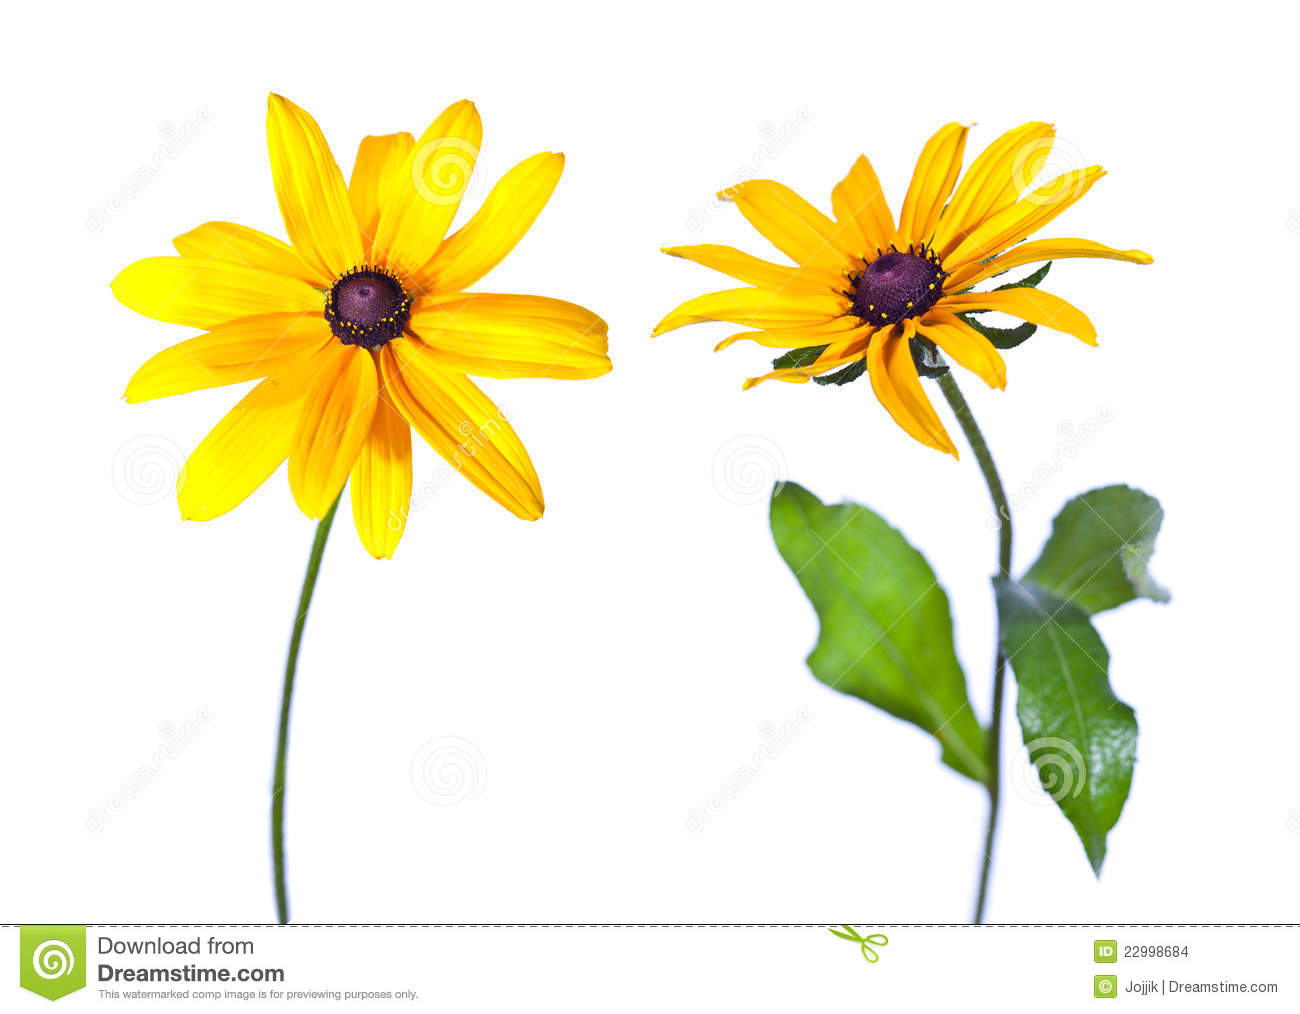 Brown eyed susan clipart.